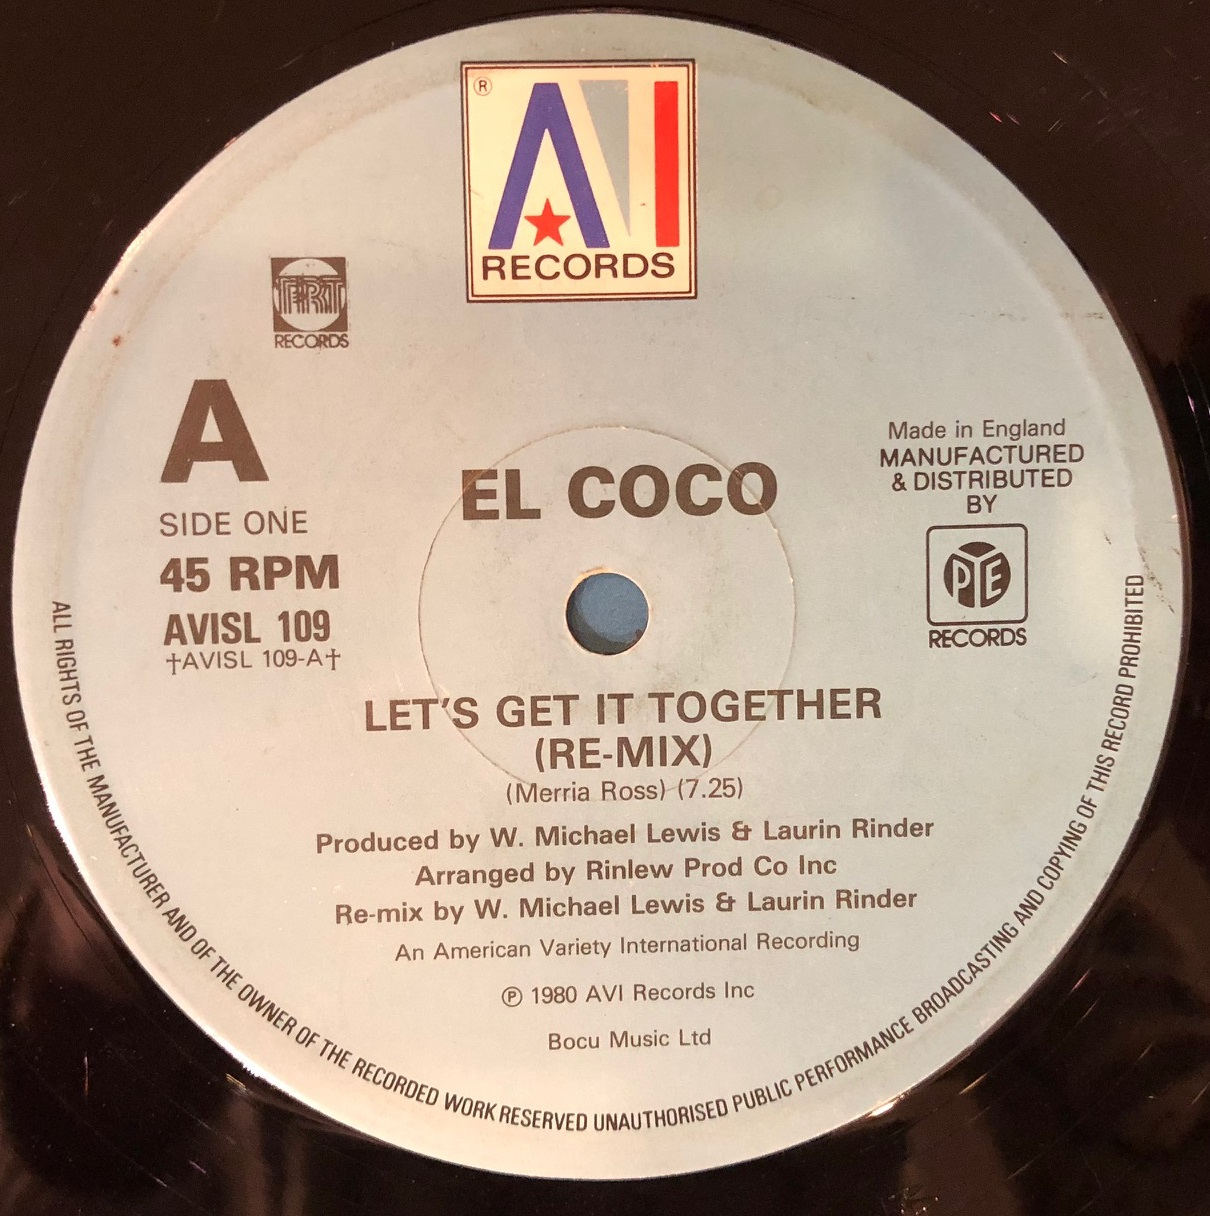 EL COCO / LET'S GET IT TOGETHER  (RE-MIX)